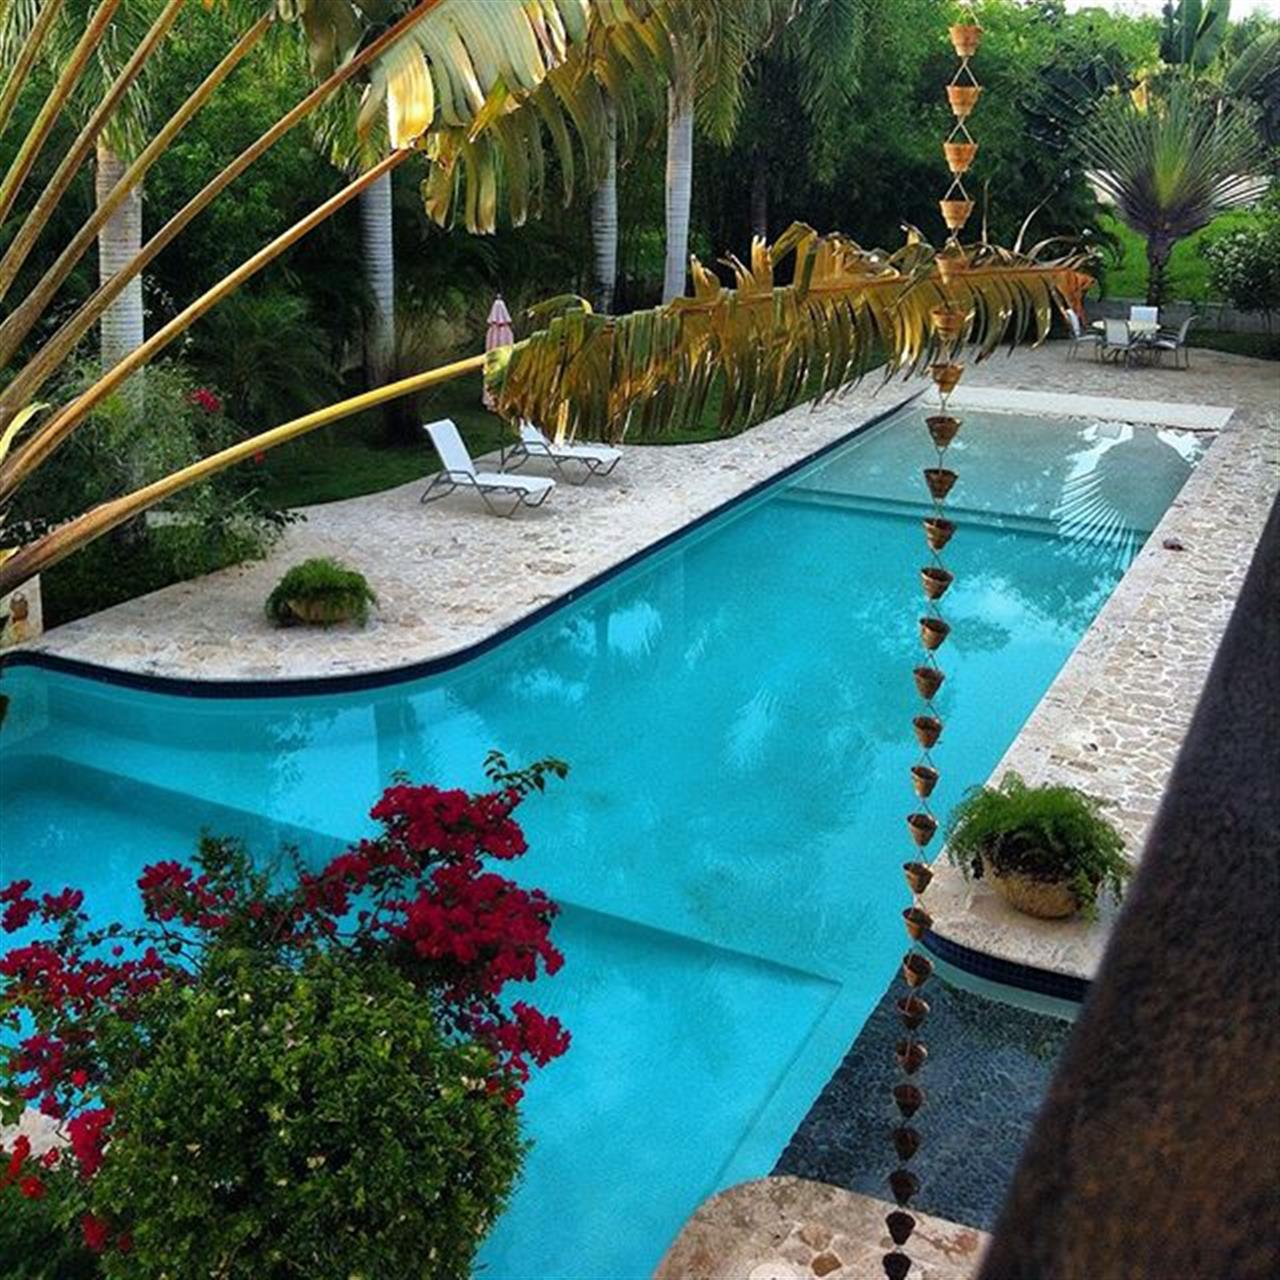 #Luxuryvilla in residential community near #Cabarete only steps away from the #beach. www.selectcaribbean.com